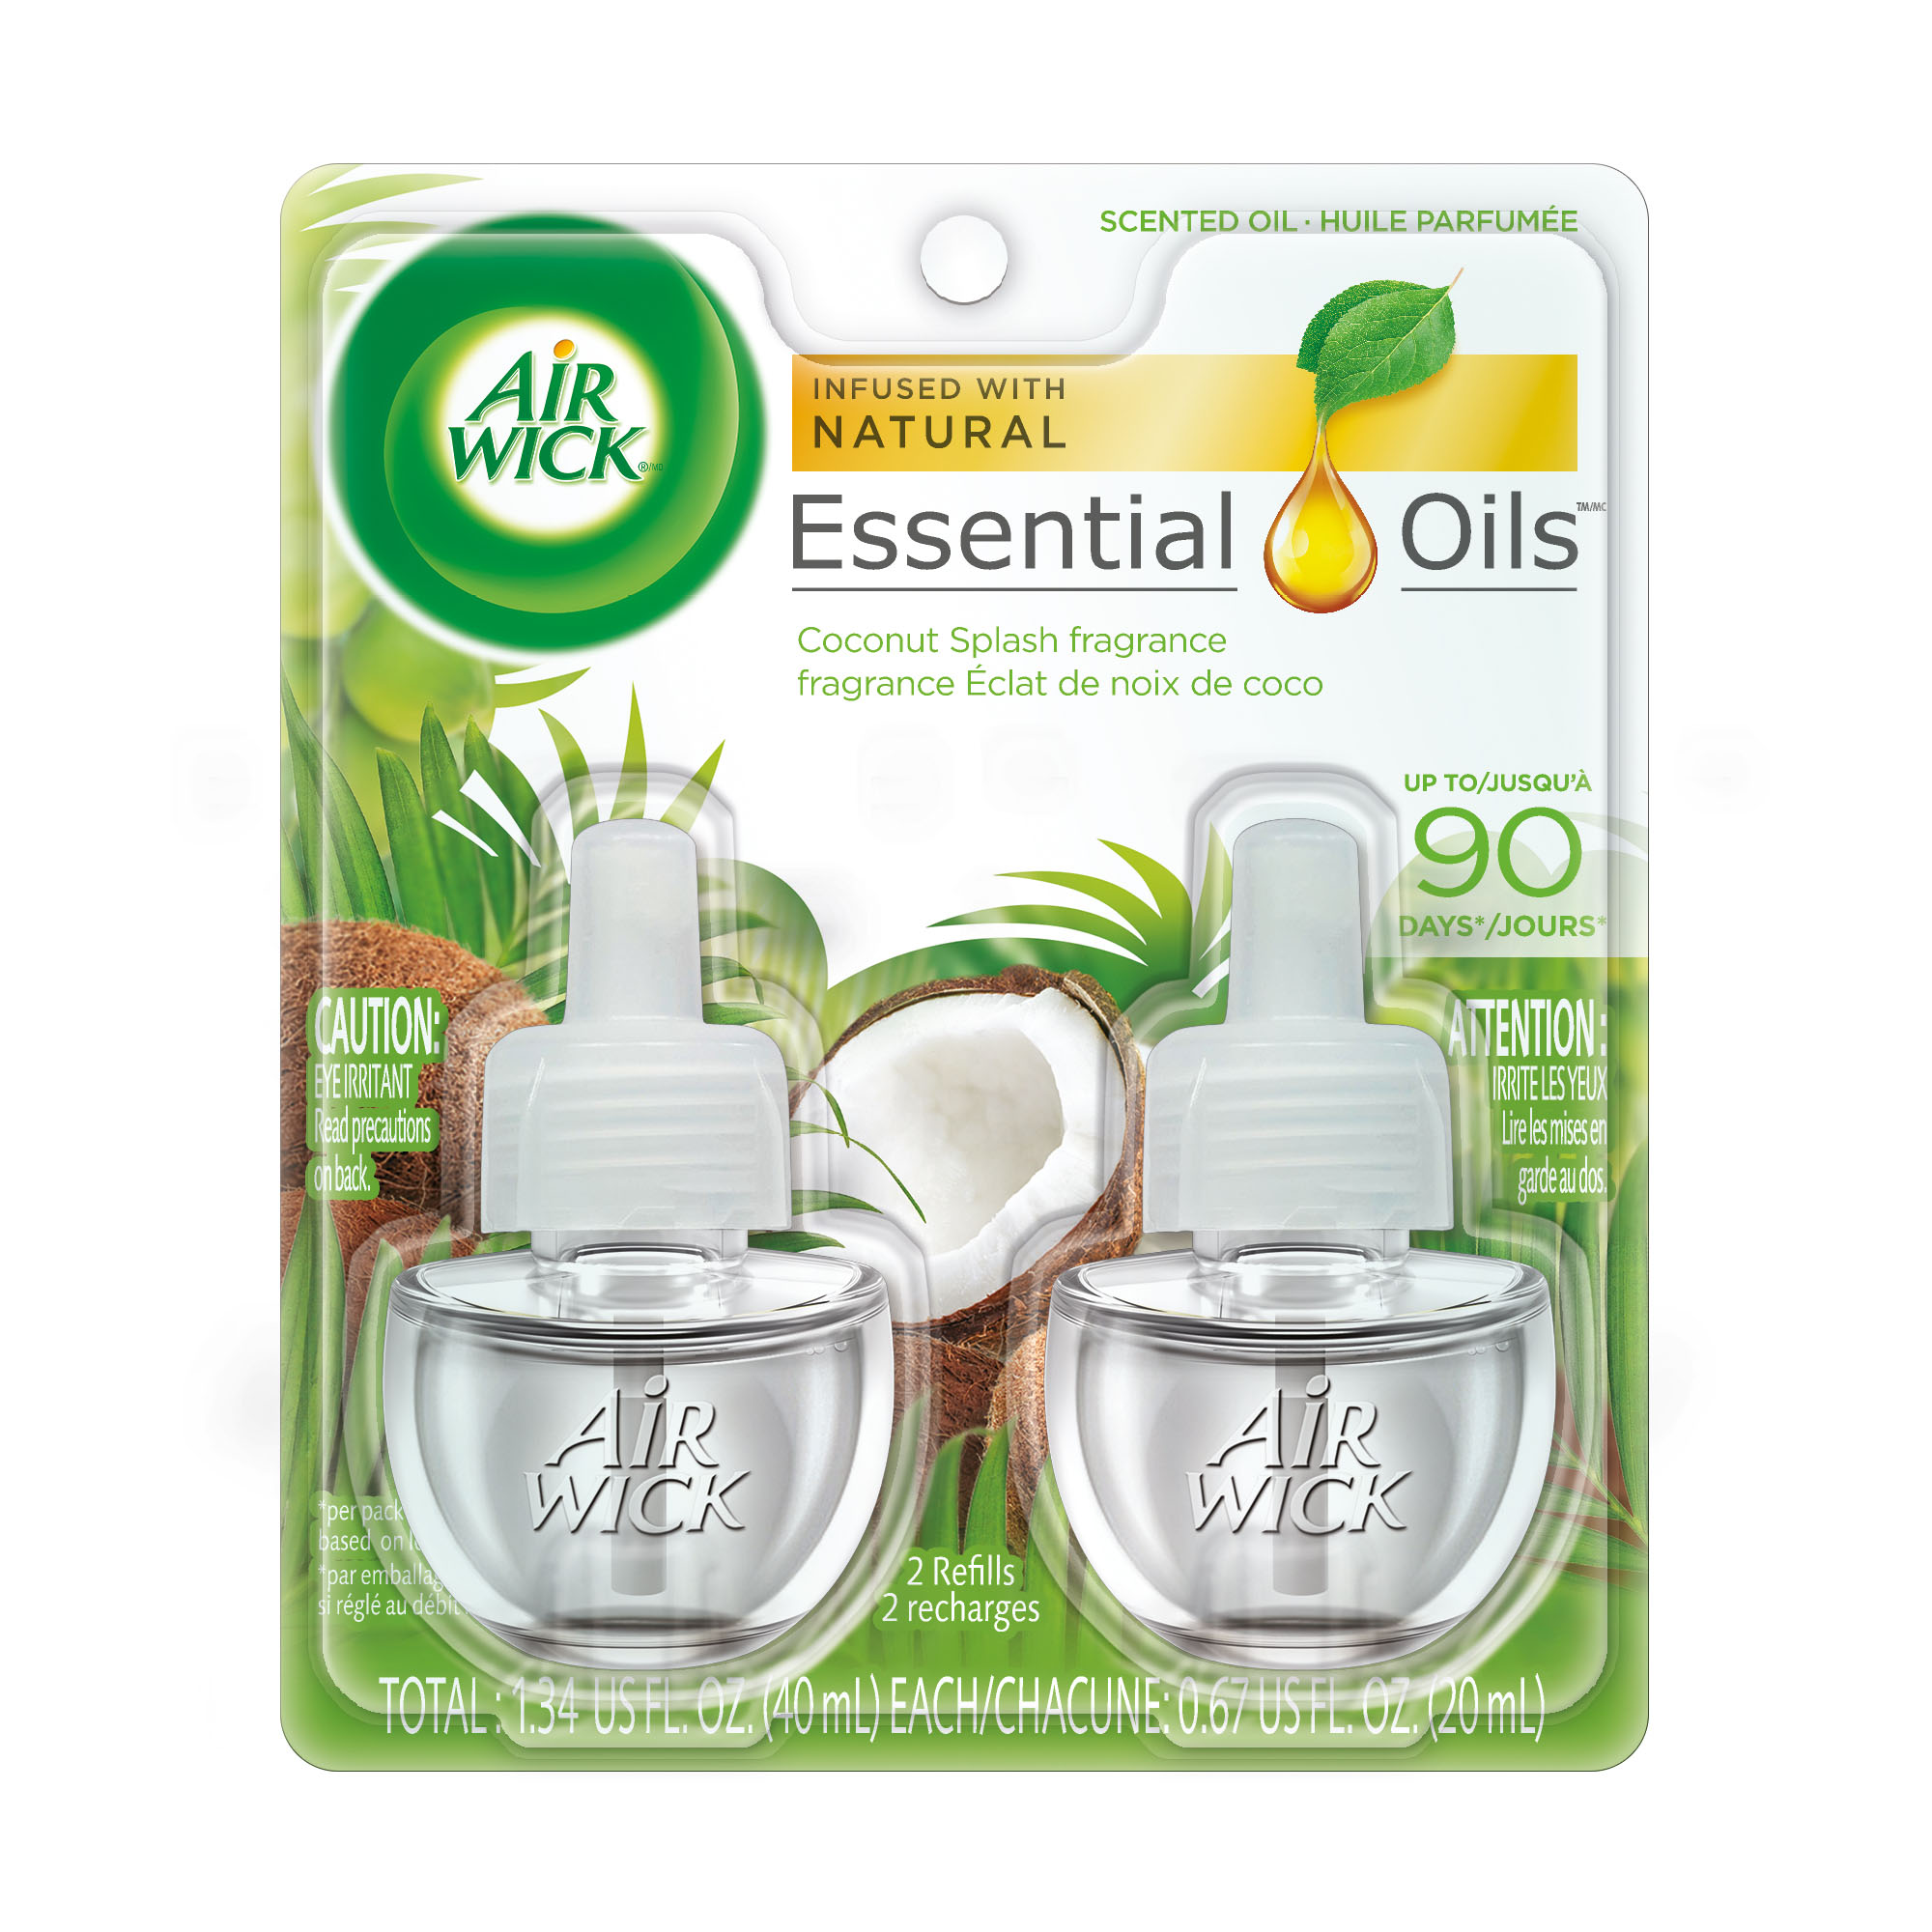 Air Wick Scented Oil 2 Refills, Coconut Splash, (2X0.67oz), Air Freshener